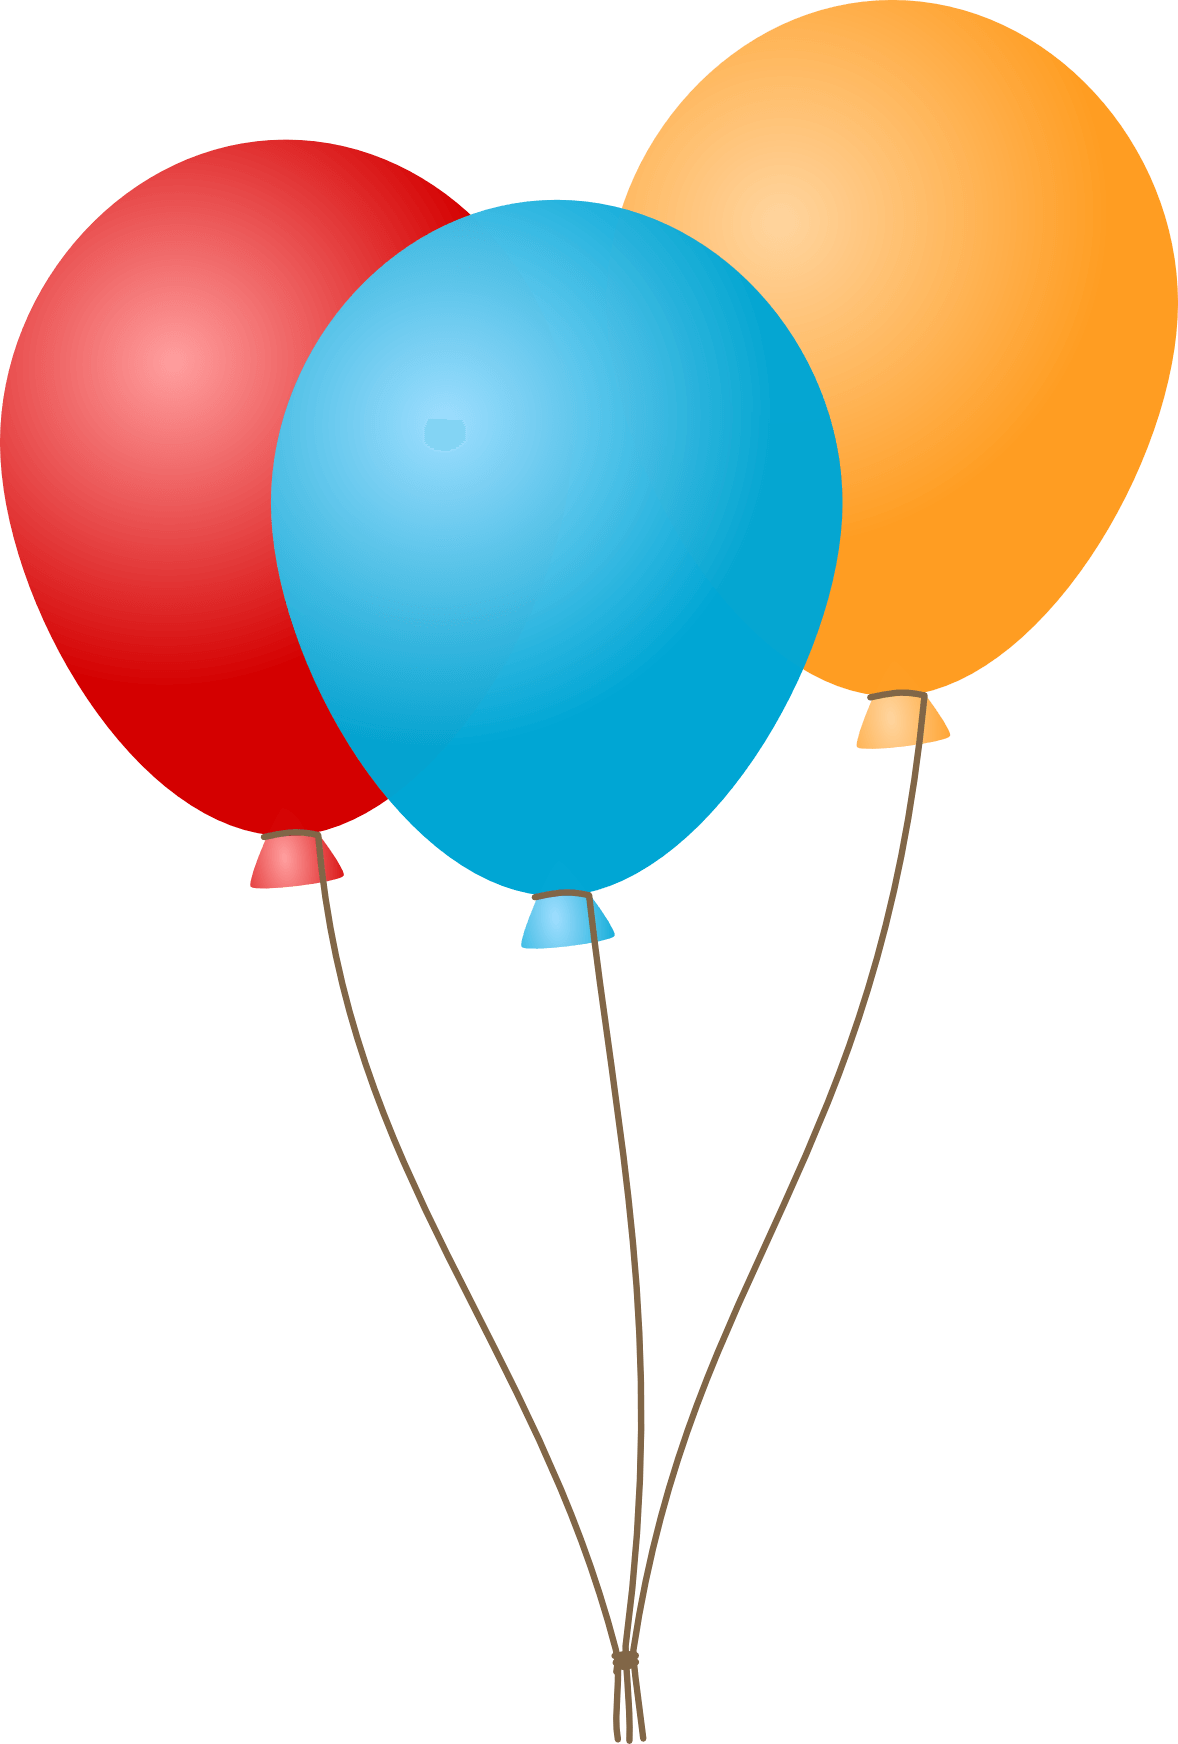 1178x1744 Party Balloon Transparent Png